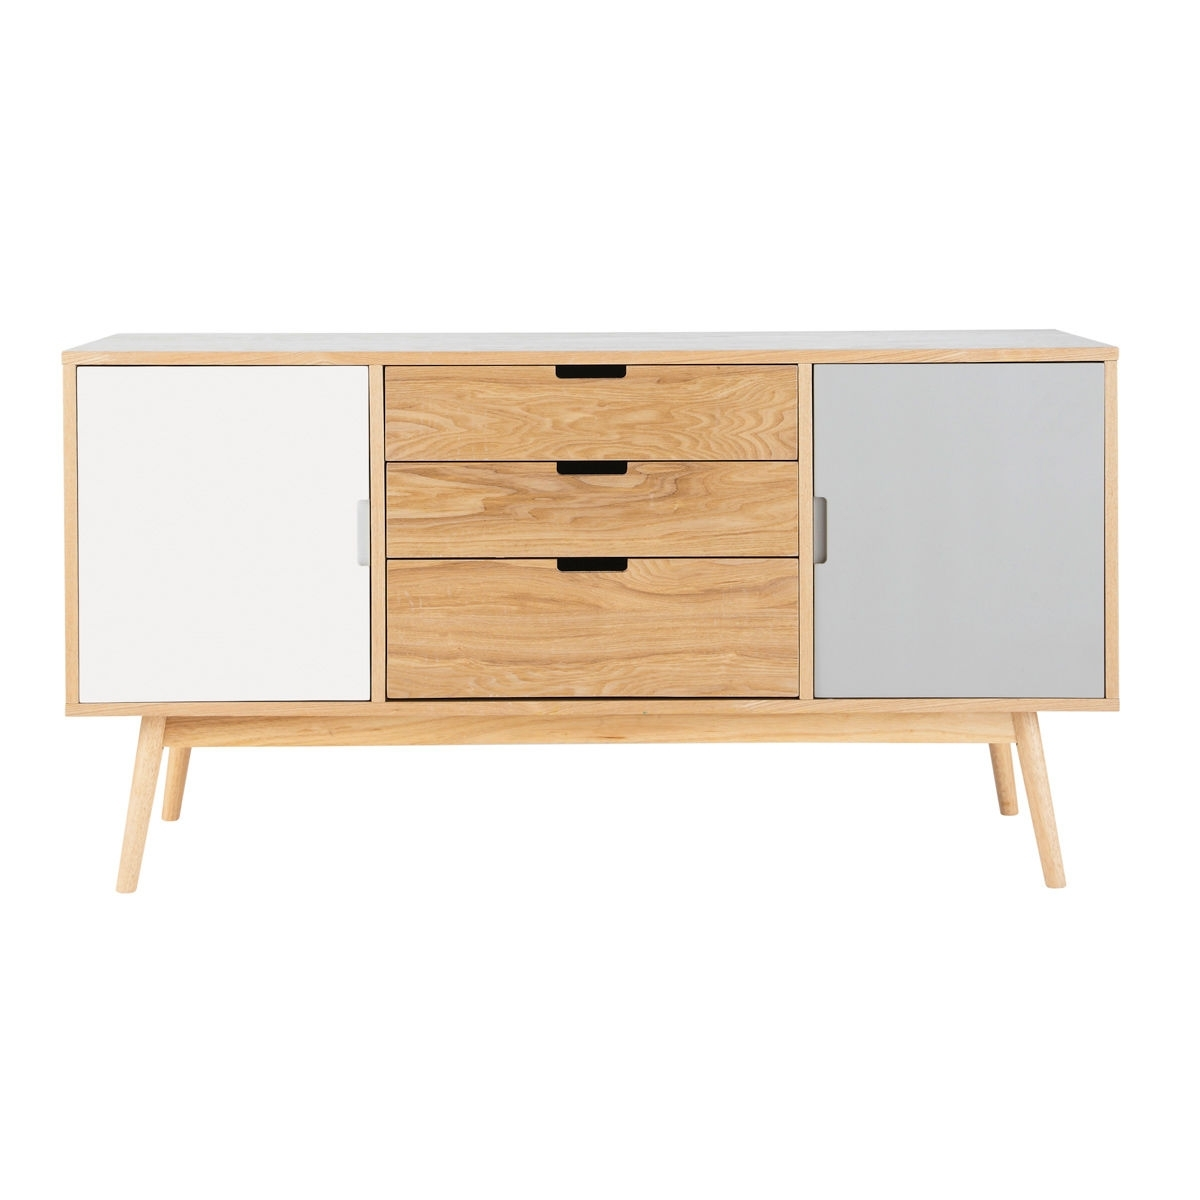 Vintage 2-Door 3-Drawer Sideboard | Maisons Du Monde regarding Antique Walnut Finish 2-Door/4-Drawer Sideboards (Image 29 of 30)